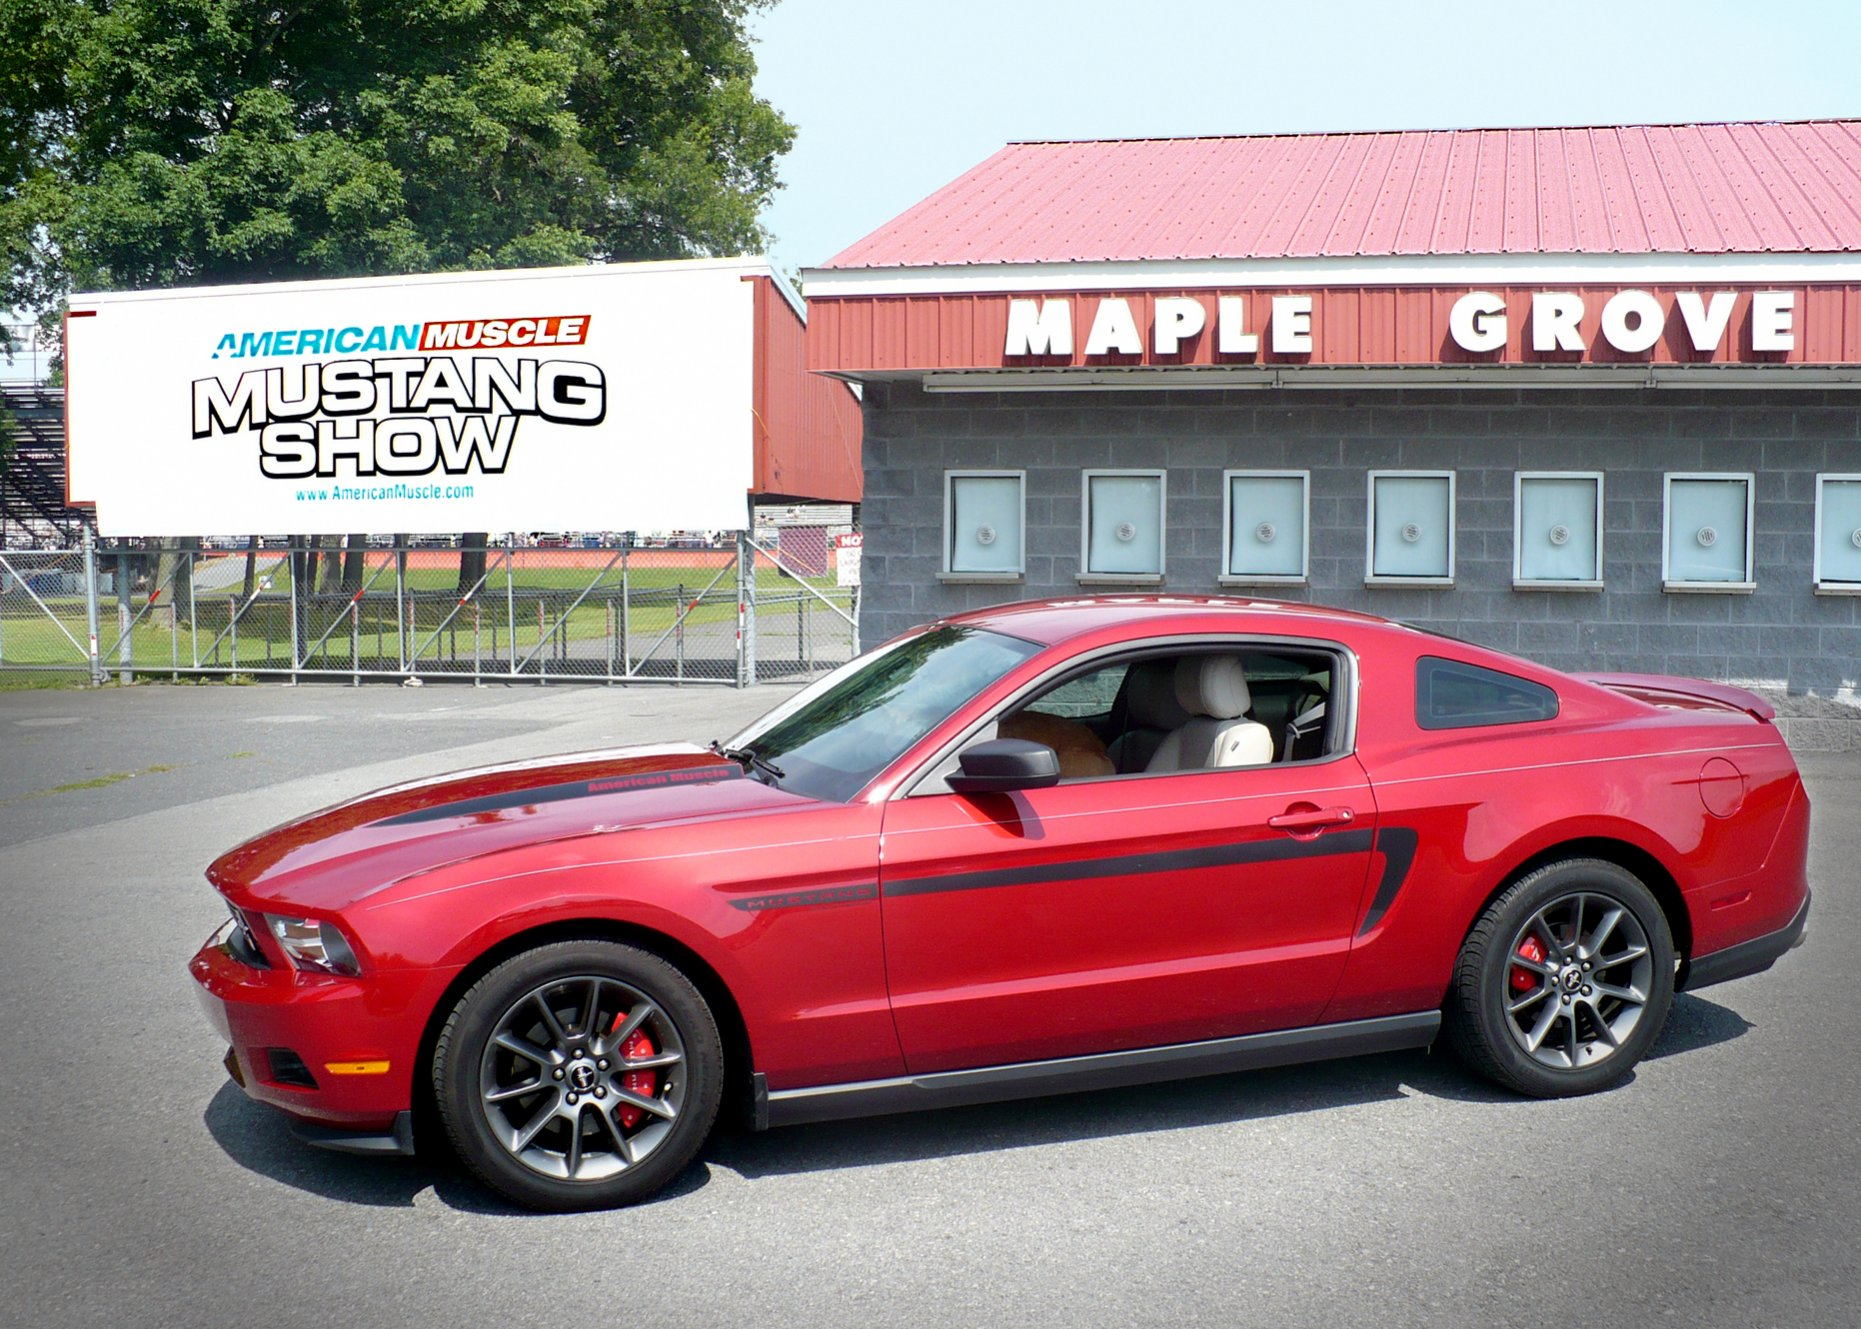 Click image for larger version  Name:Maple grove Mustang 8X10.jpg Views:39 Size:494.0 KB ID:202106